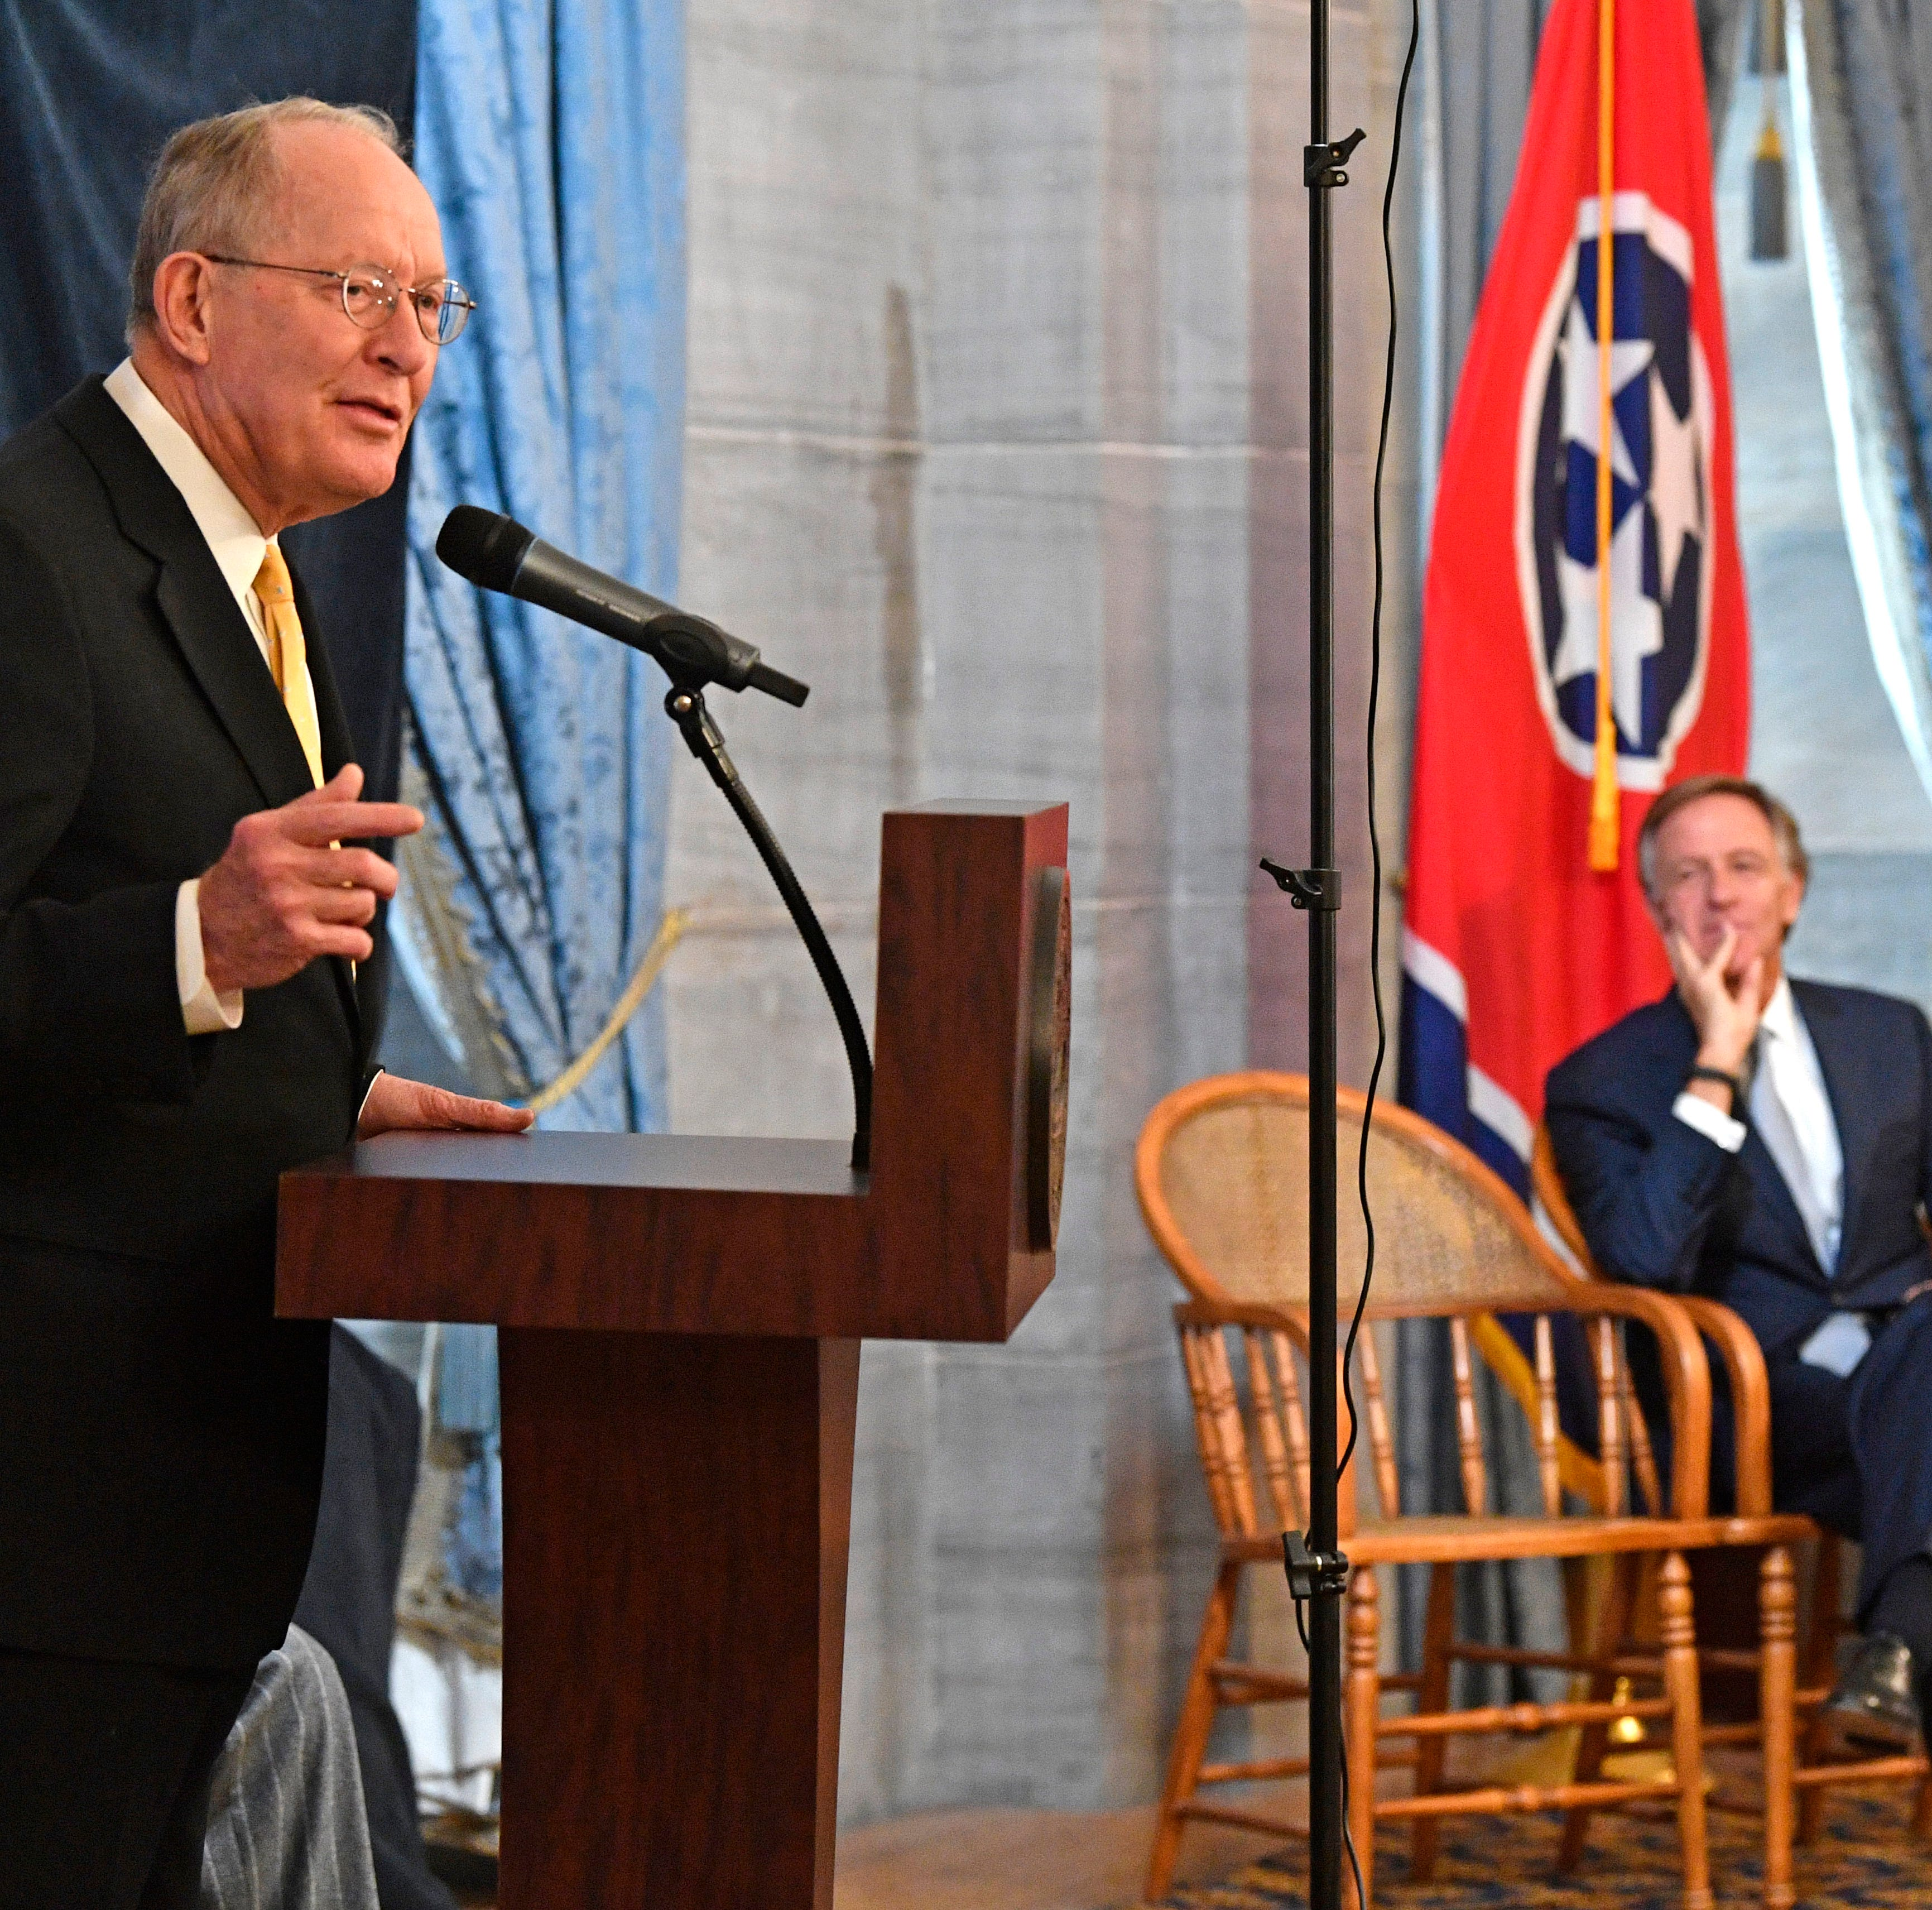 Tennessee US Sen. Lamar Alexander will not seek re-election in 2020